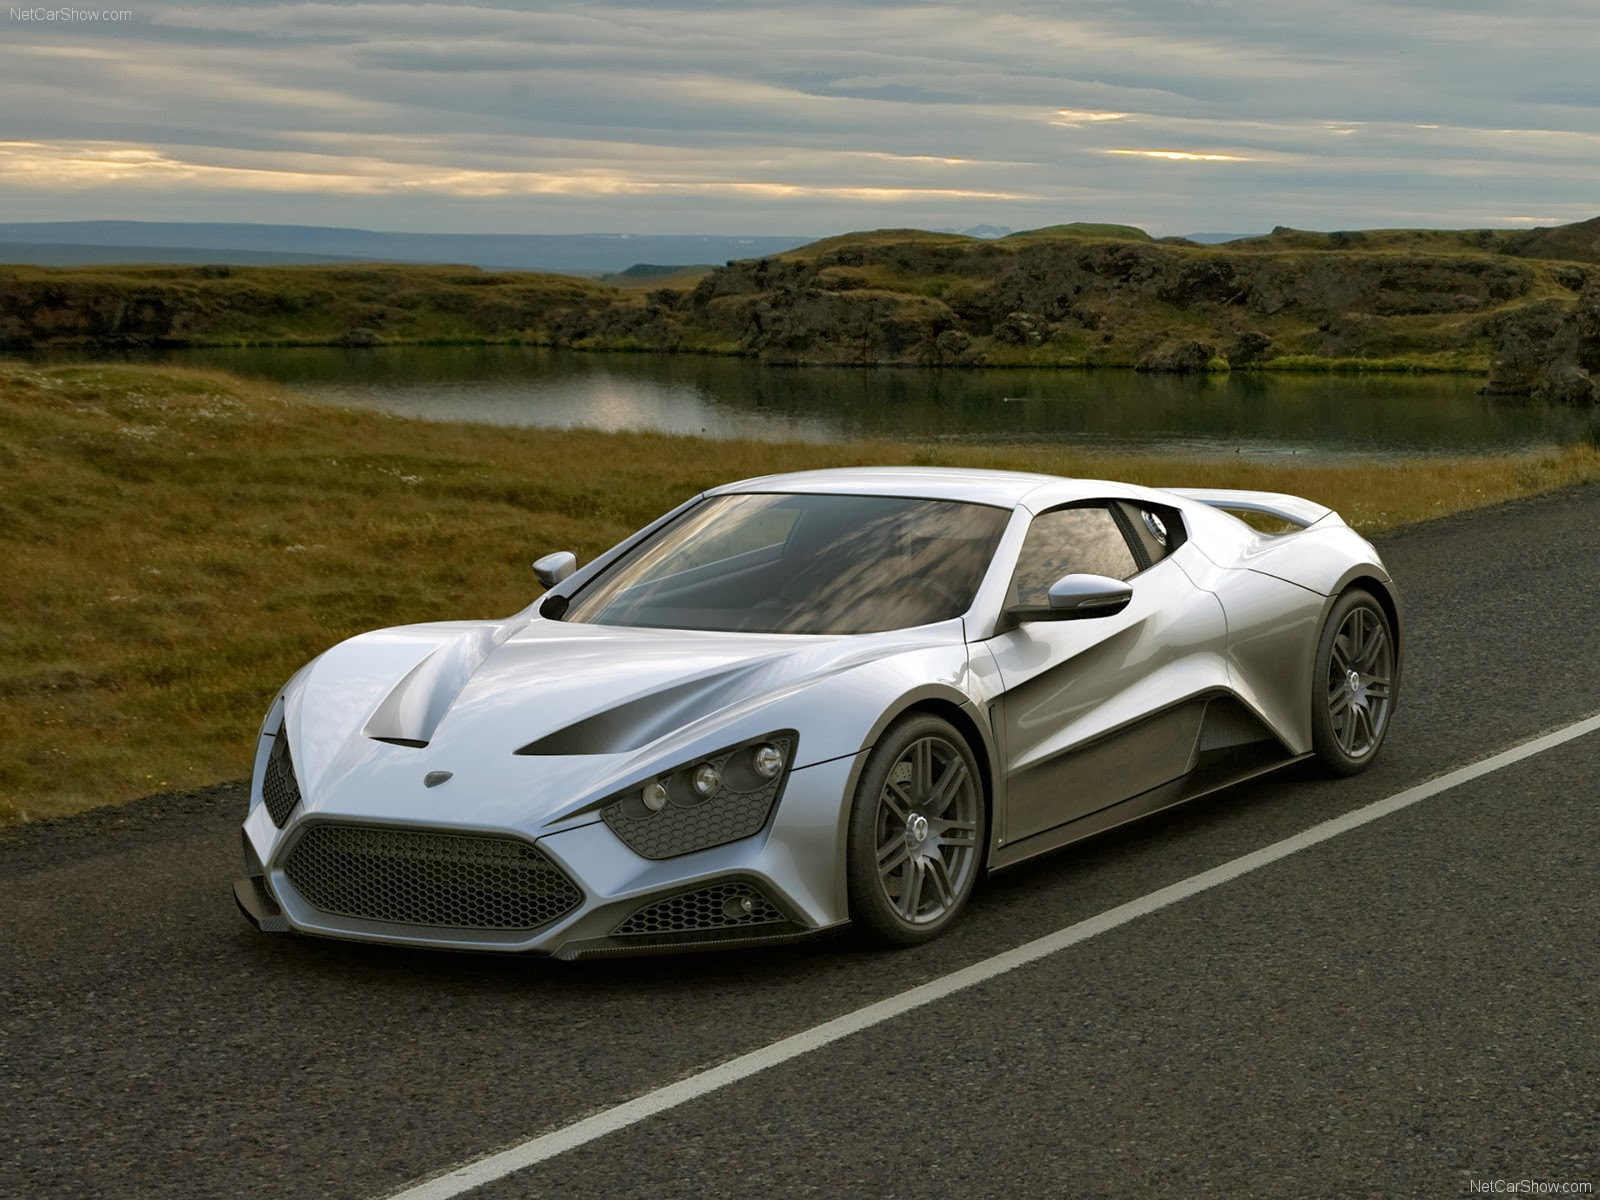 Zenvo St1 In The List Of World S Expensive Car New Car